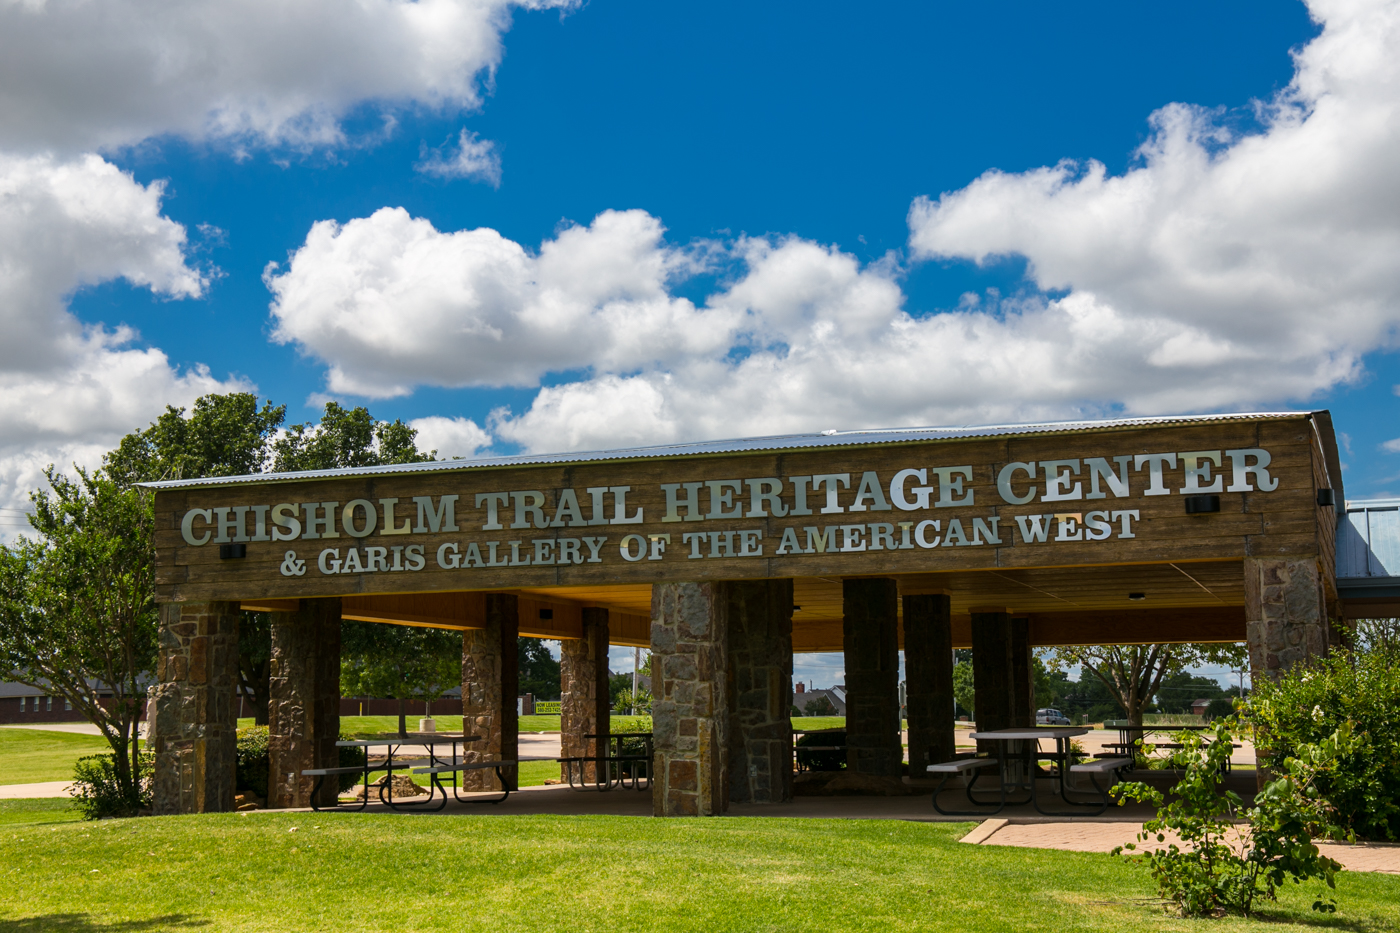 Chisholm Trail Heritage Center Chickasaw Country